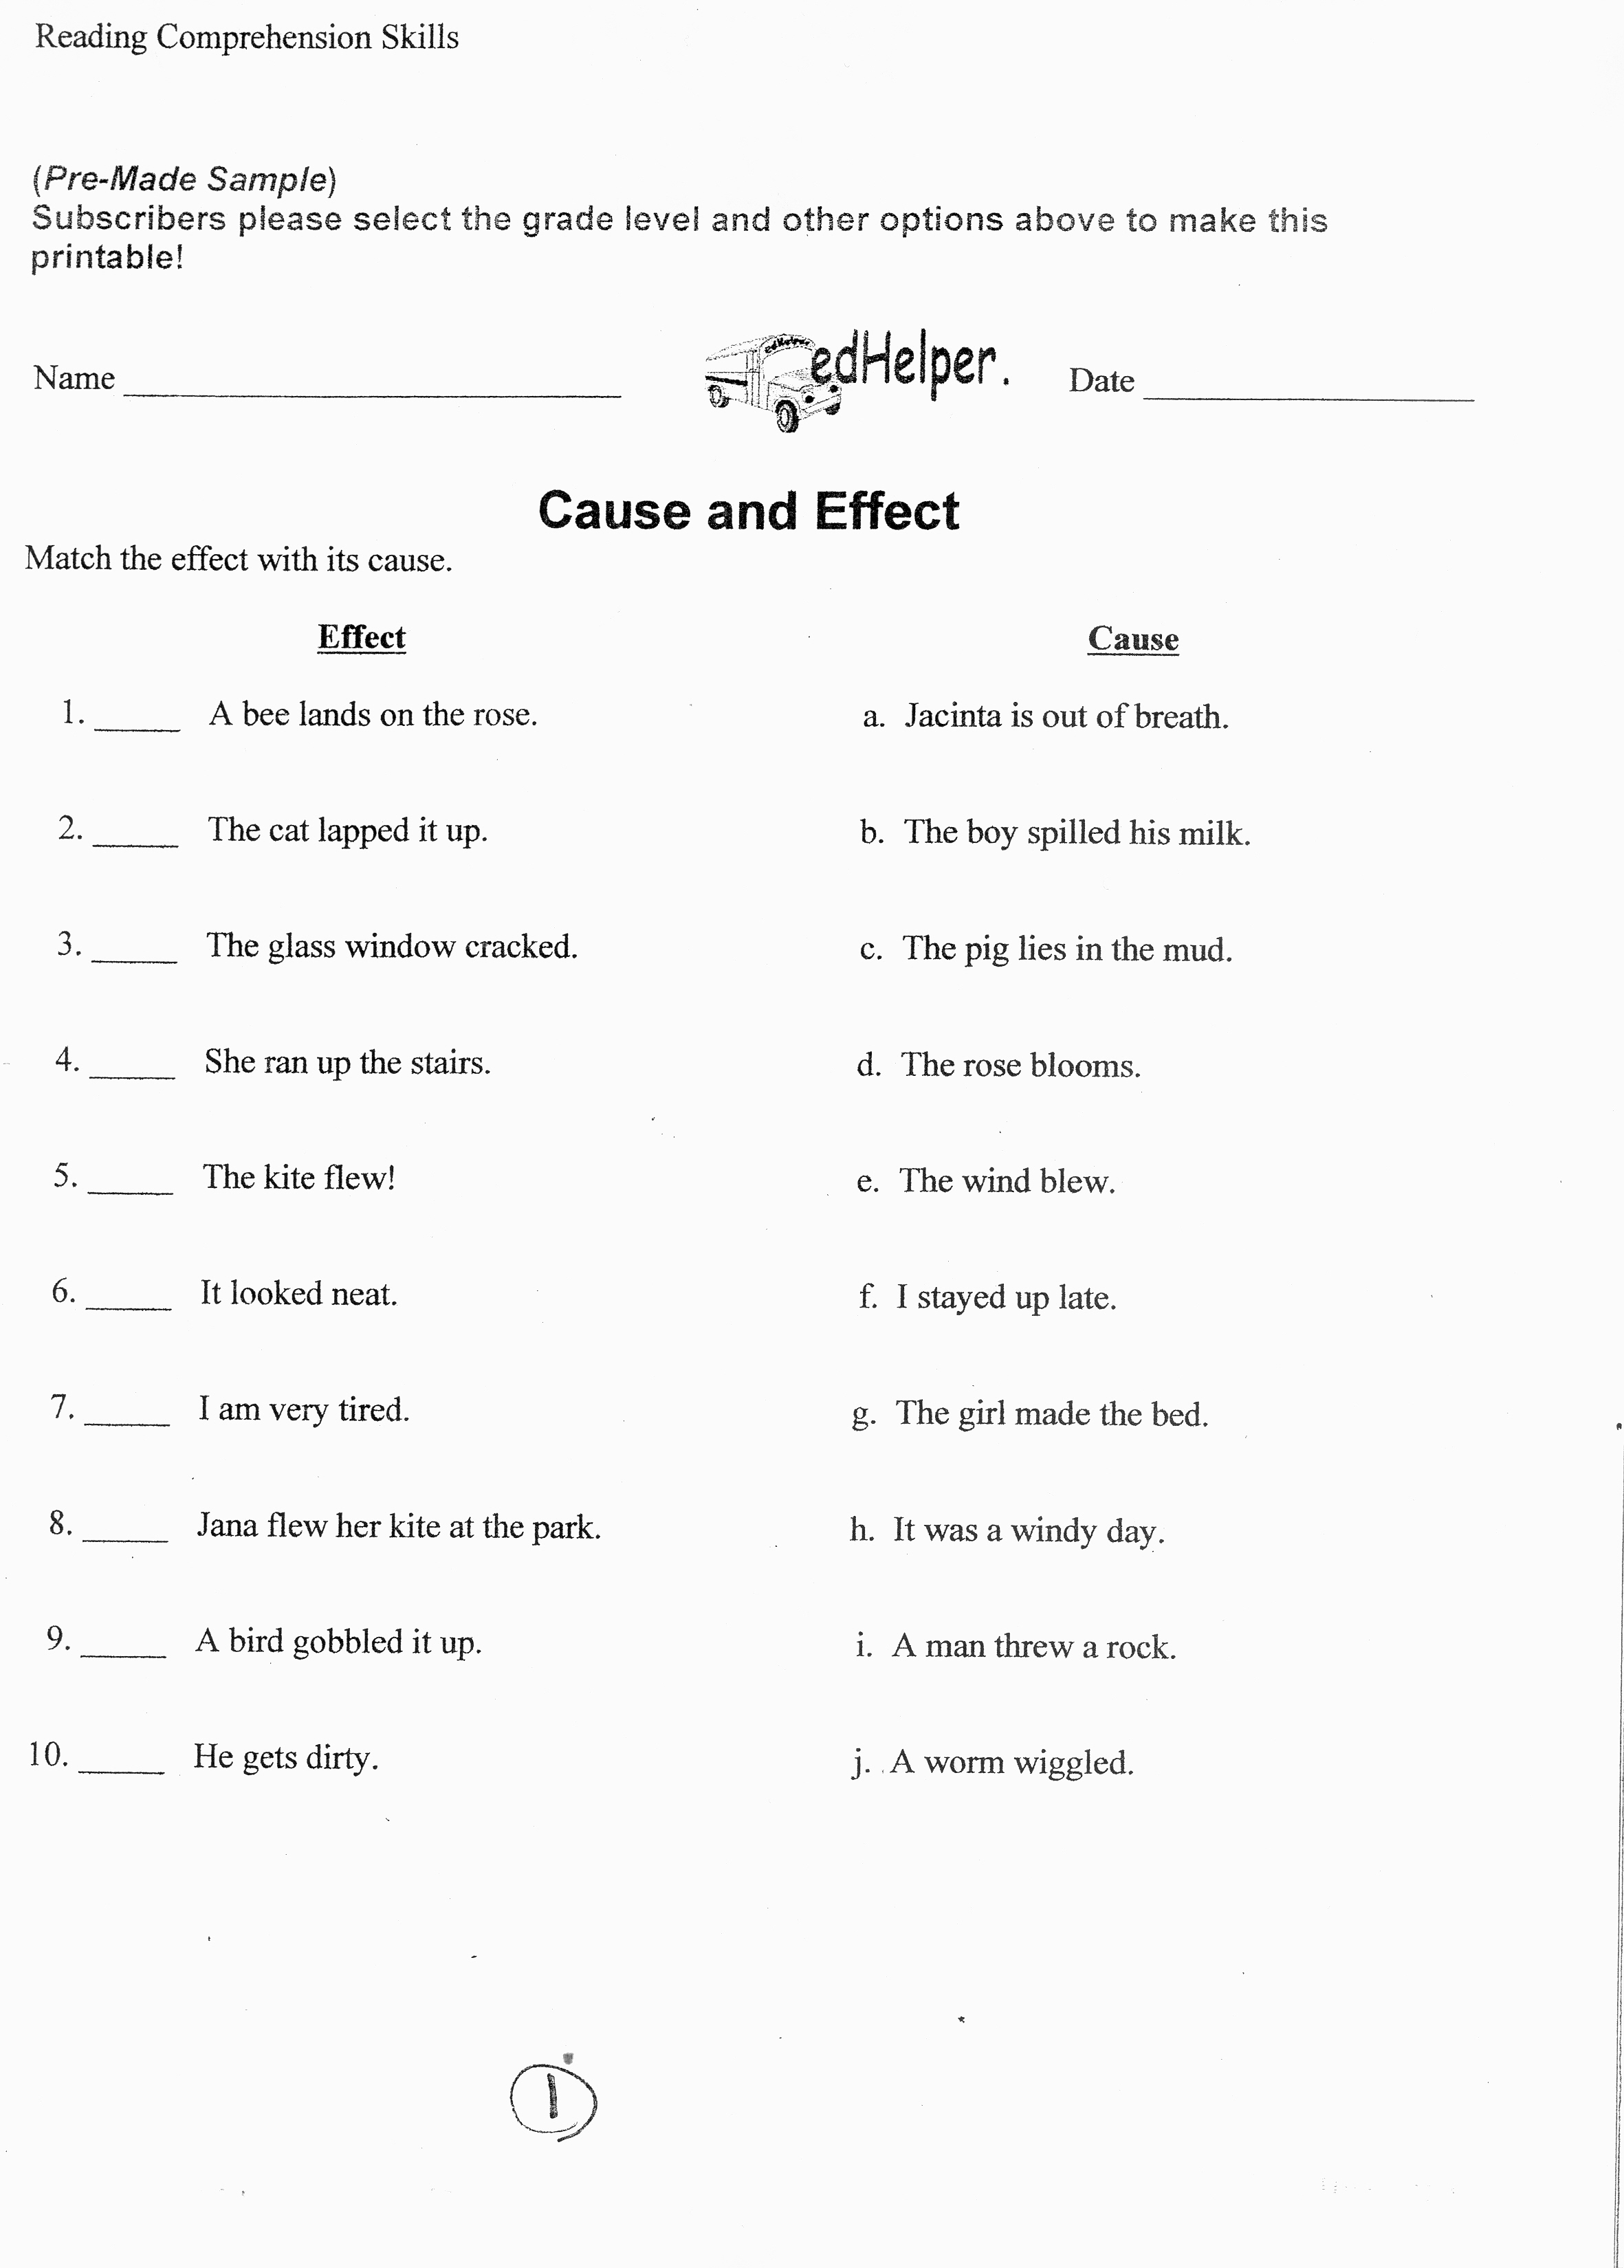 Free Worksheet 7th Grade Language Arts Worksheets Printable 6th grade lessons middle school language arts help cause and effect worksheet